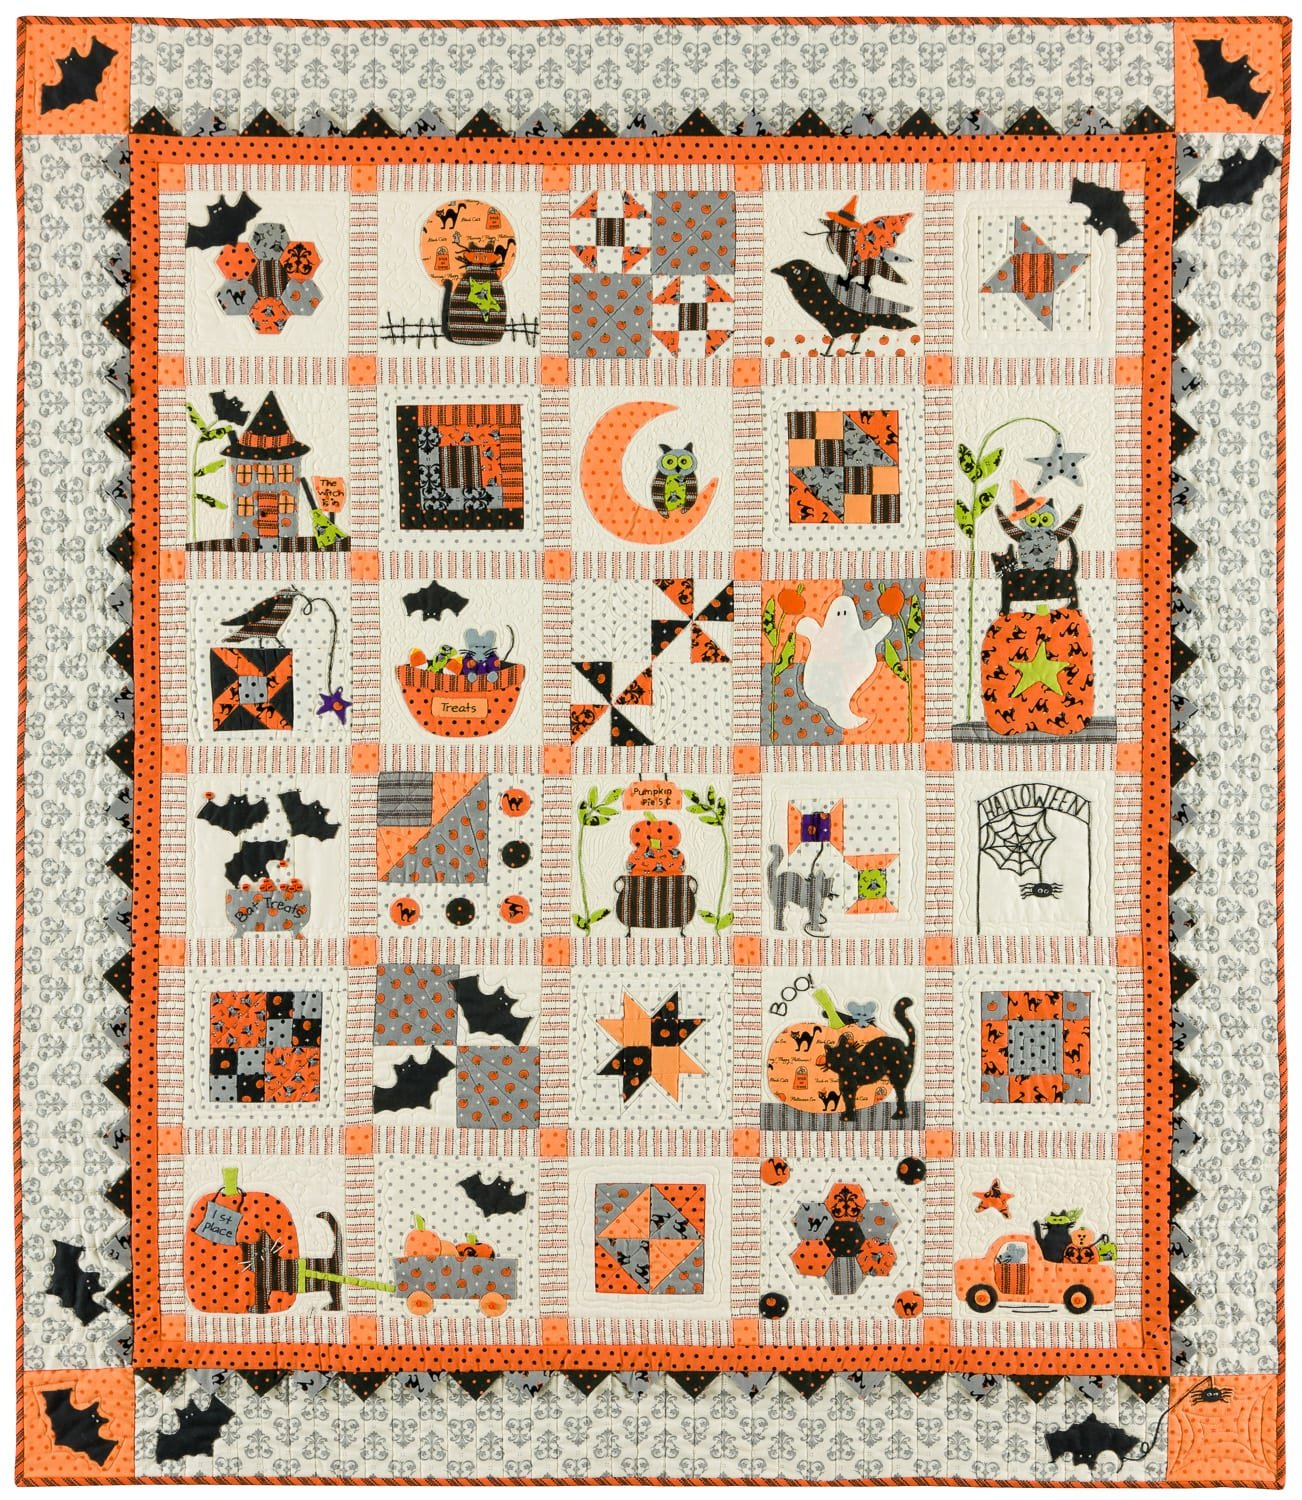 Spooky Halloween Quilt Kit by Bunny Hill Designs